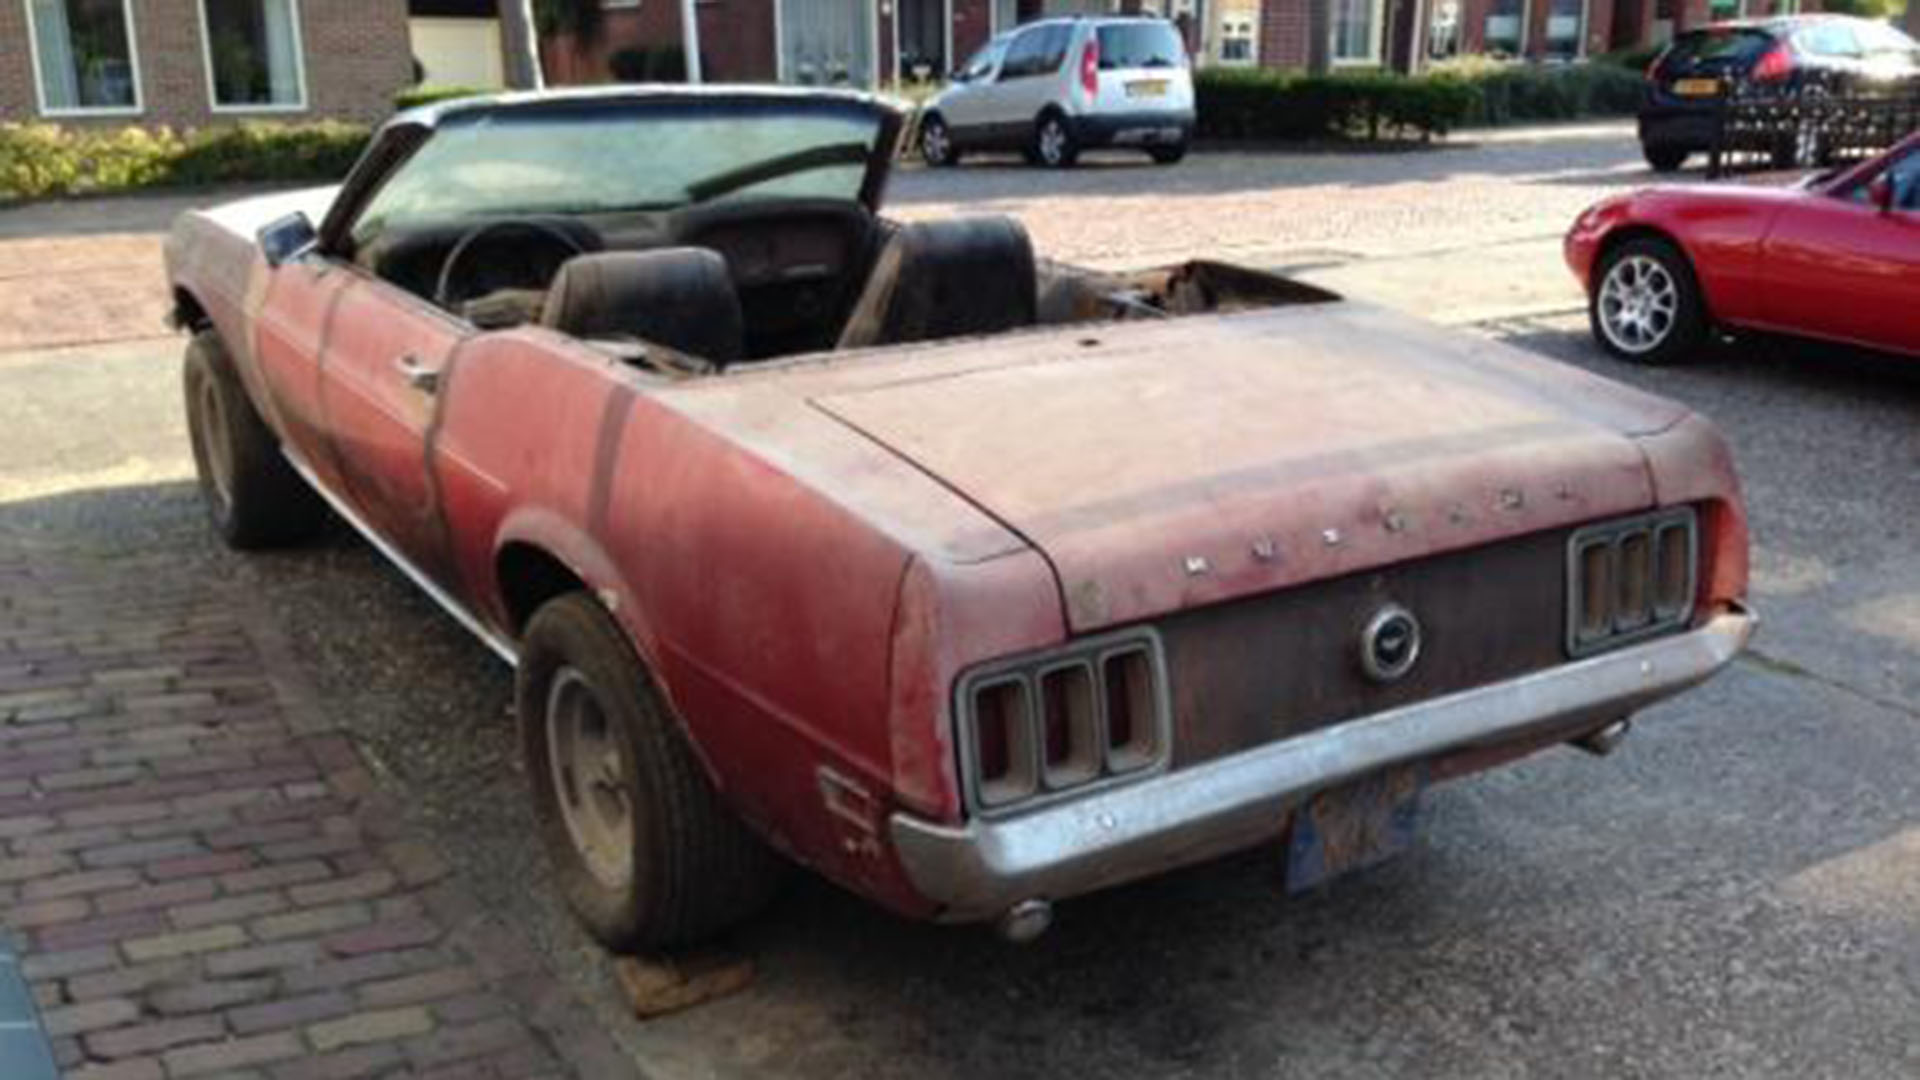 A 1970 Awd Ford Mustang Convertible Is The Latest Incredible Barn Am Looking For V8 Wiring Harness Classicsnl